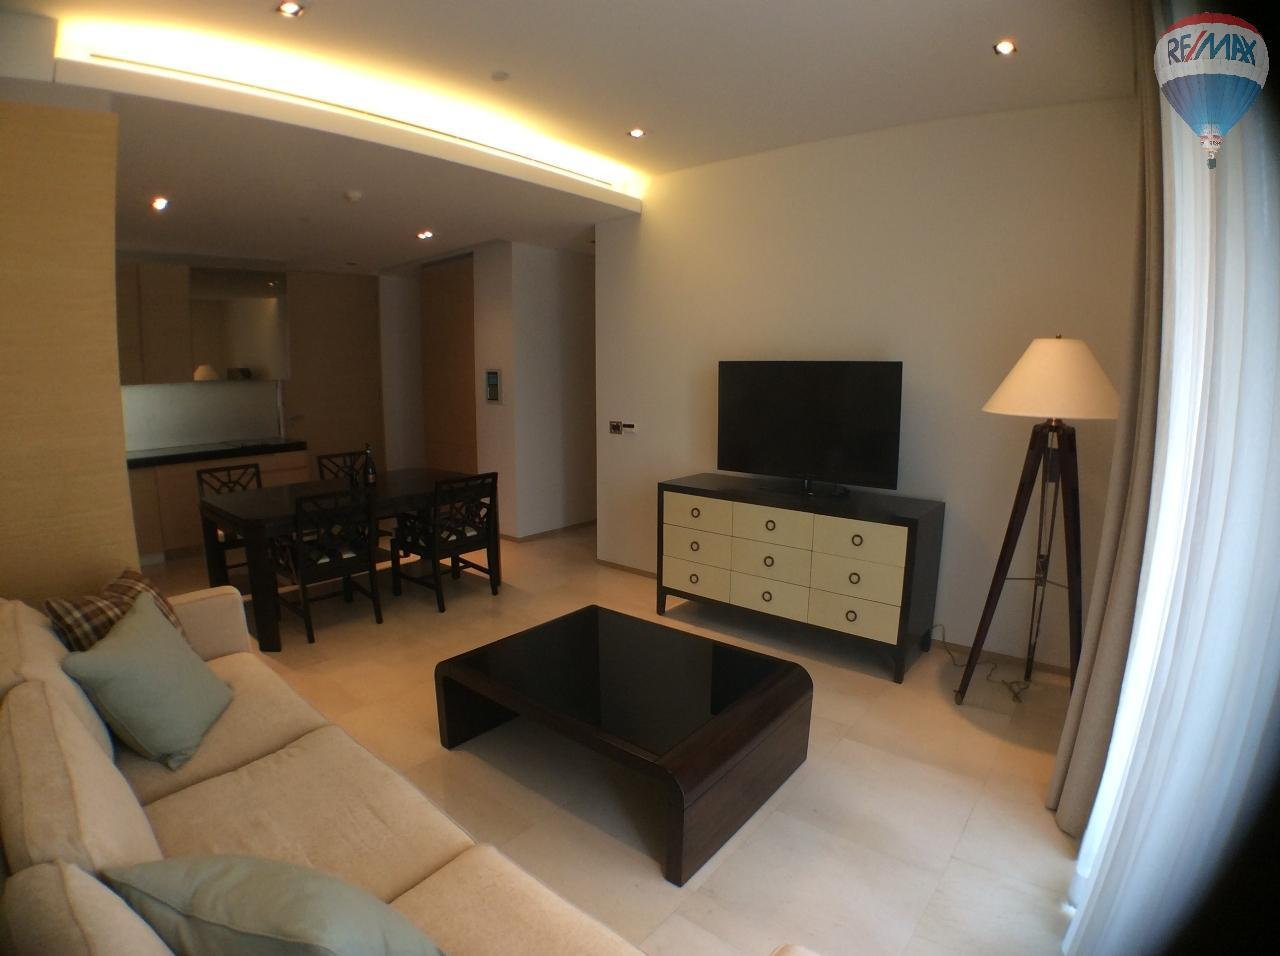 RE/MAX BestLife Agency's Saladaeng Residences 1 bedroom, Saladaeng BTS, Silom MRT, condo for rent 5